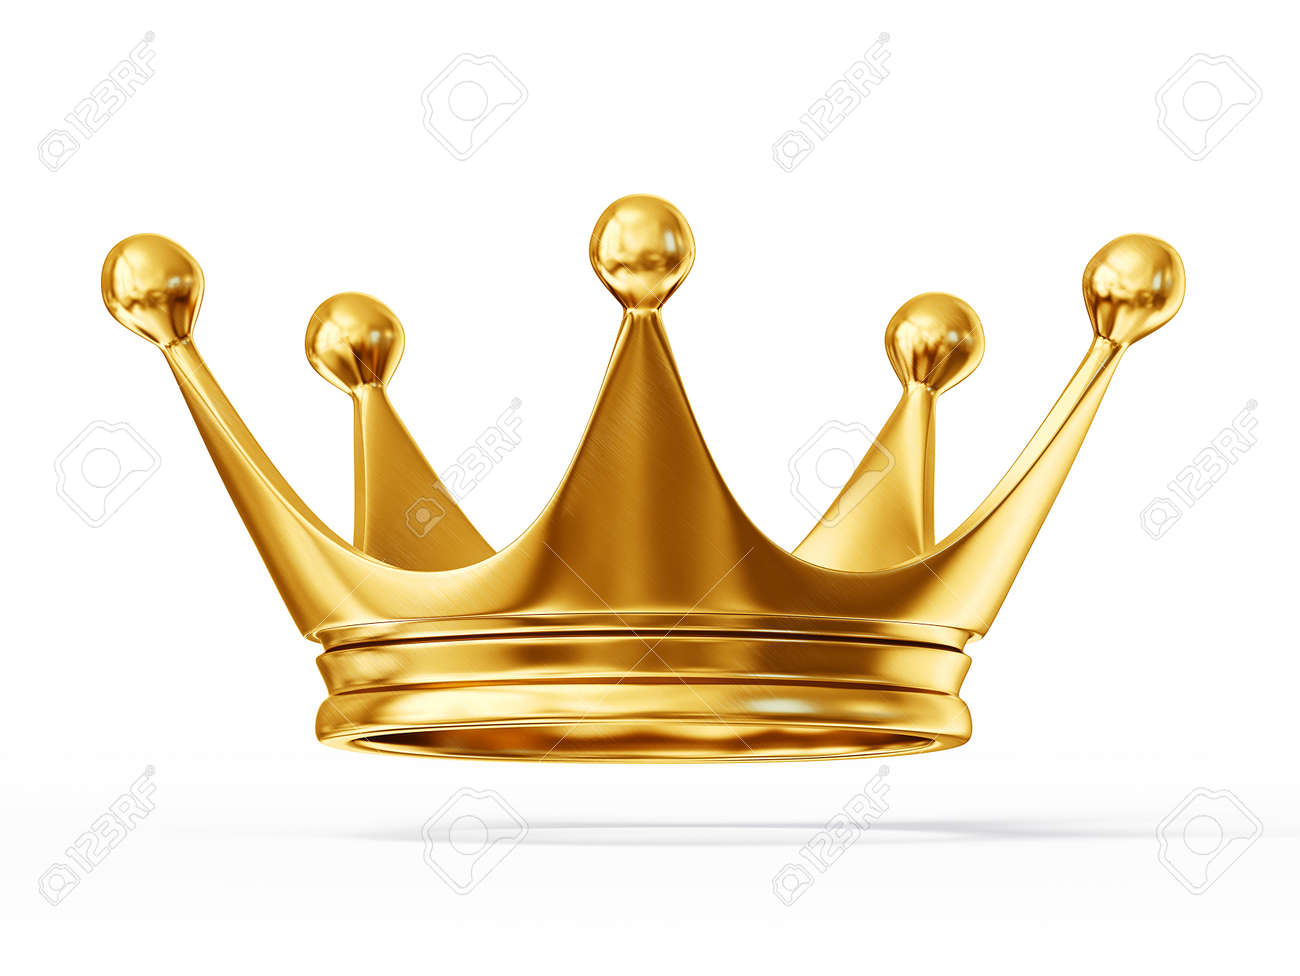 golden crown isolated on a white background - 25741698